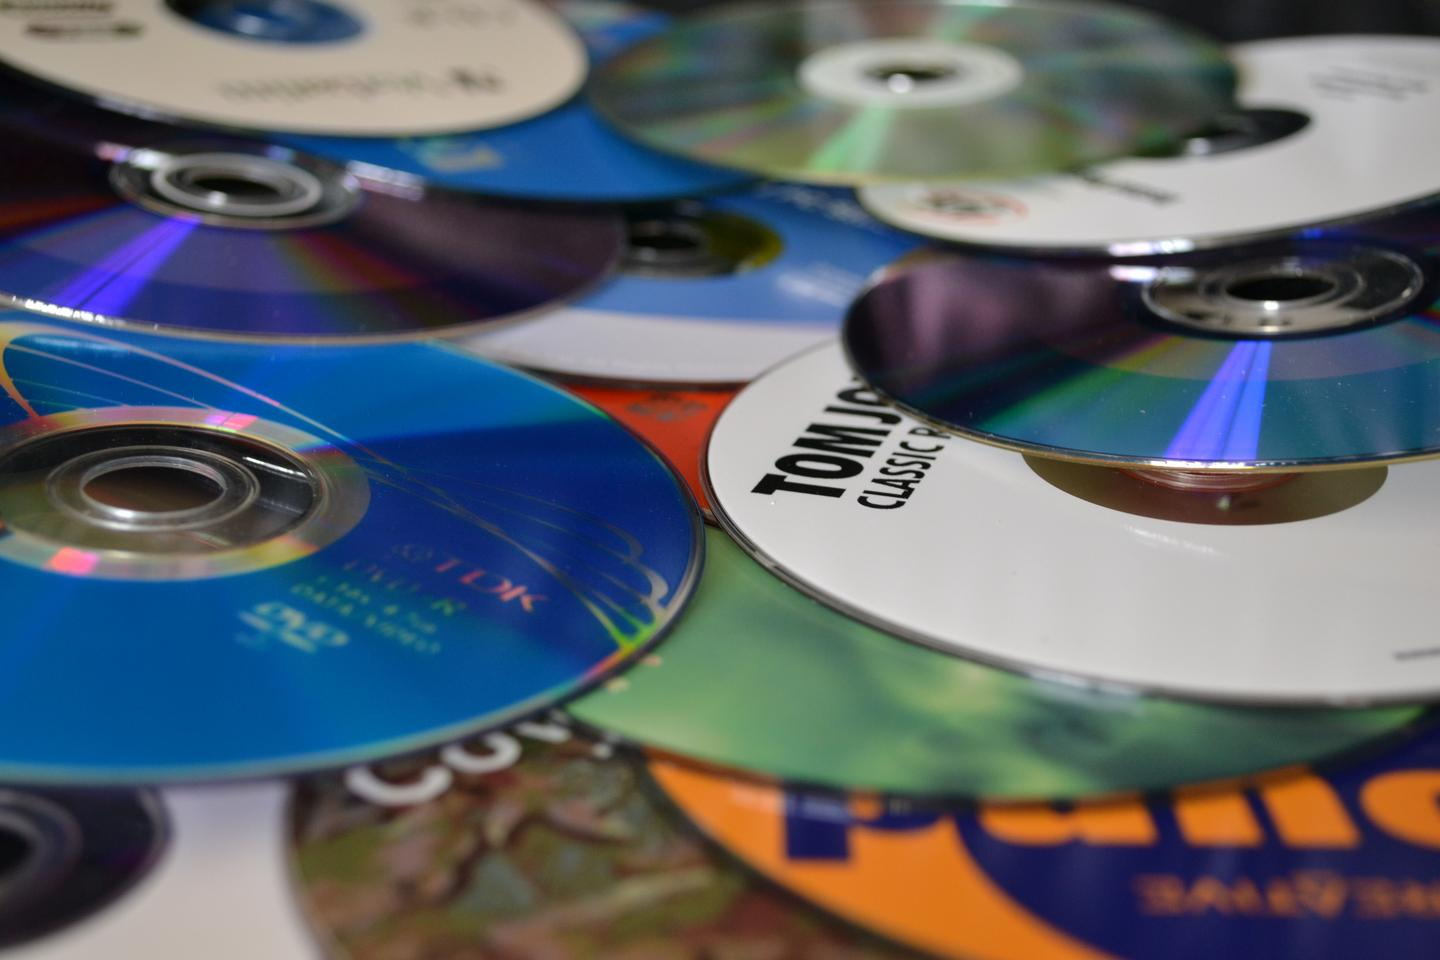 Fujitsu has developed a new recycling system to make new front panels for notebook computers from discarded CDs and DVDs (Photo: Paul Ridden/Gizmag.com)